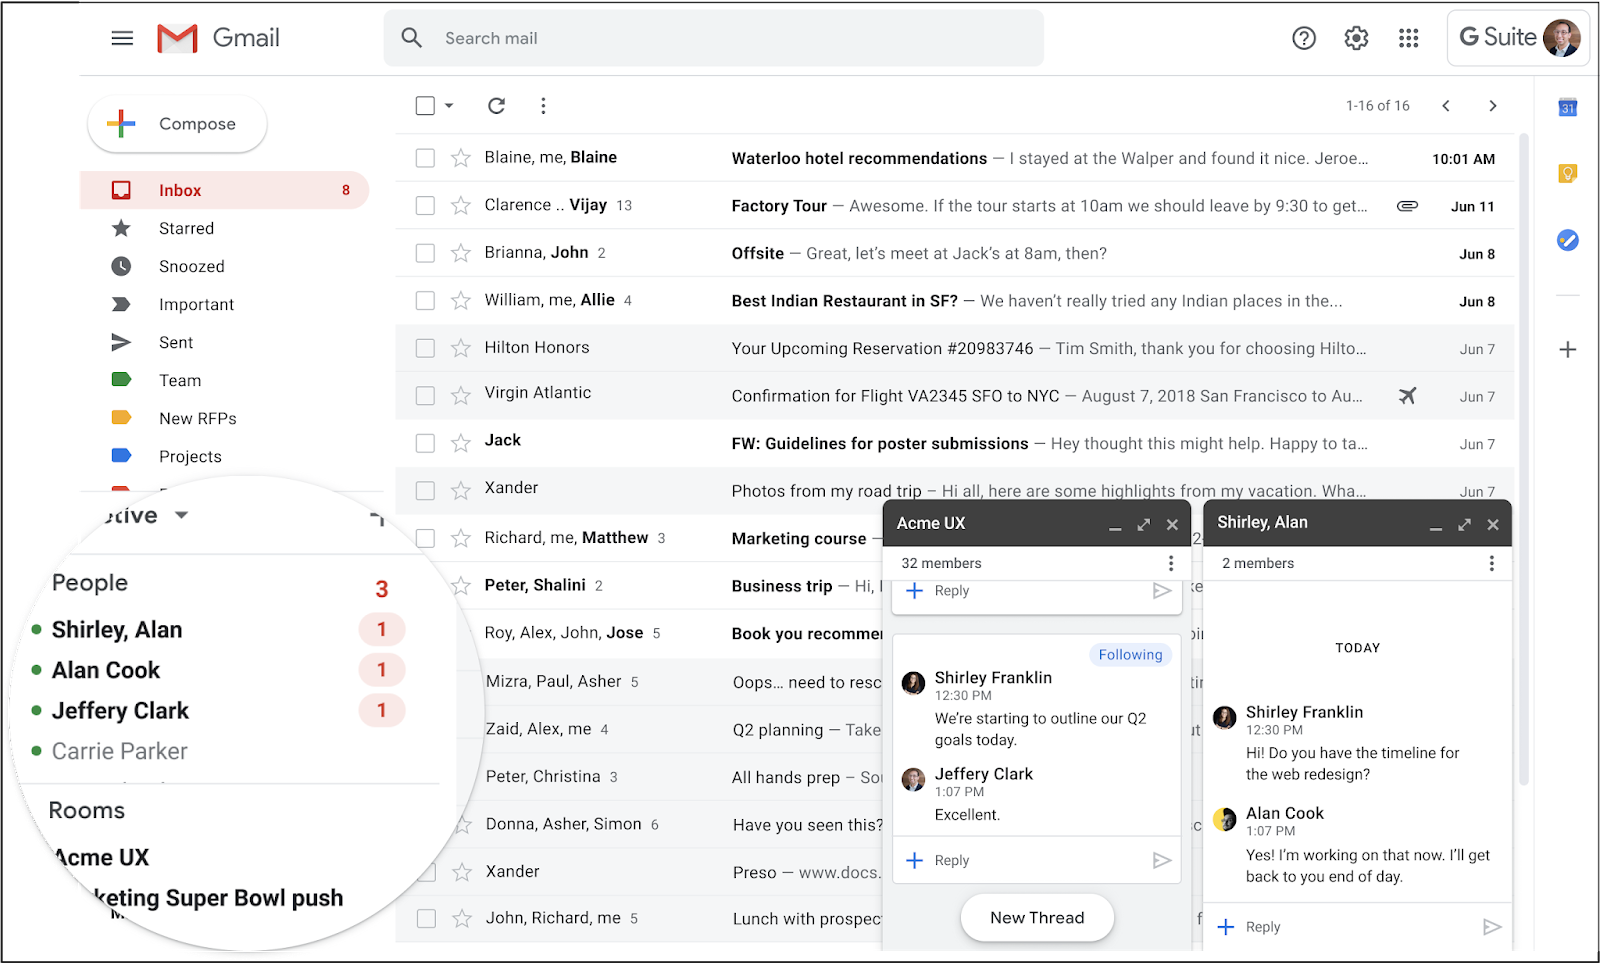 Google Chat in Gmail